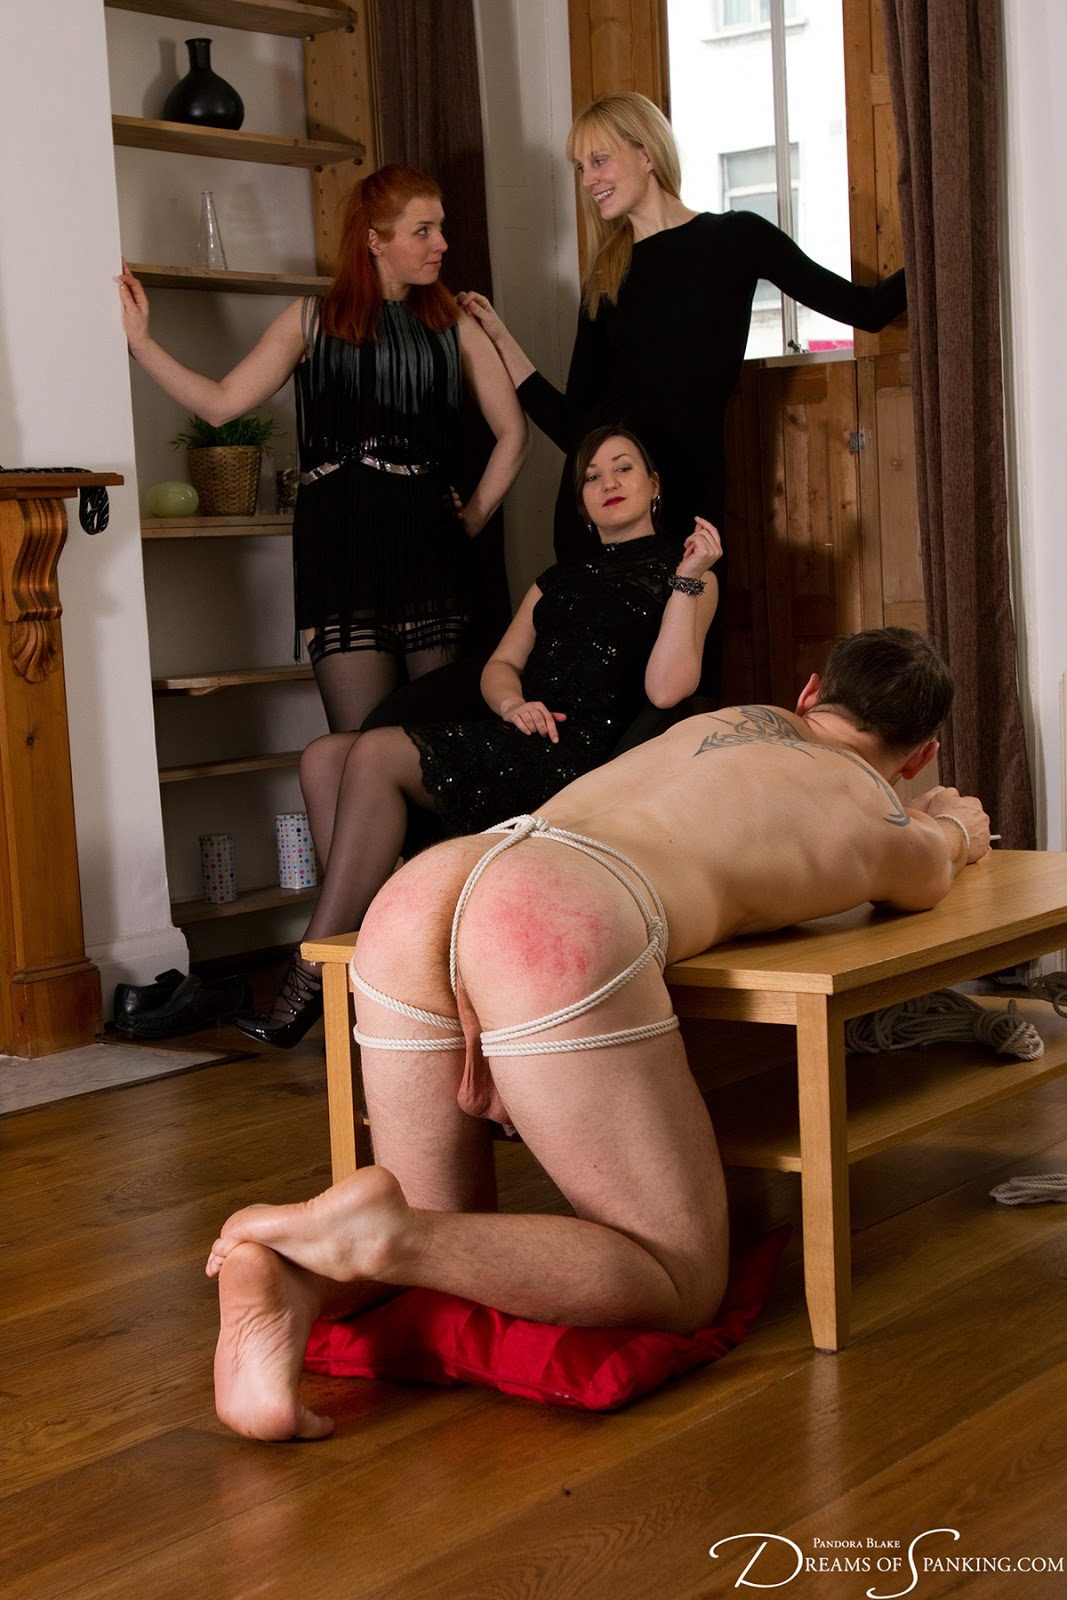 Female Spank Male Femdom Stories